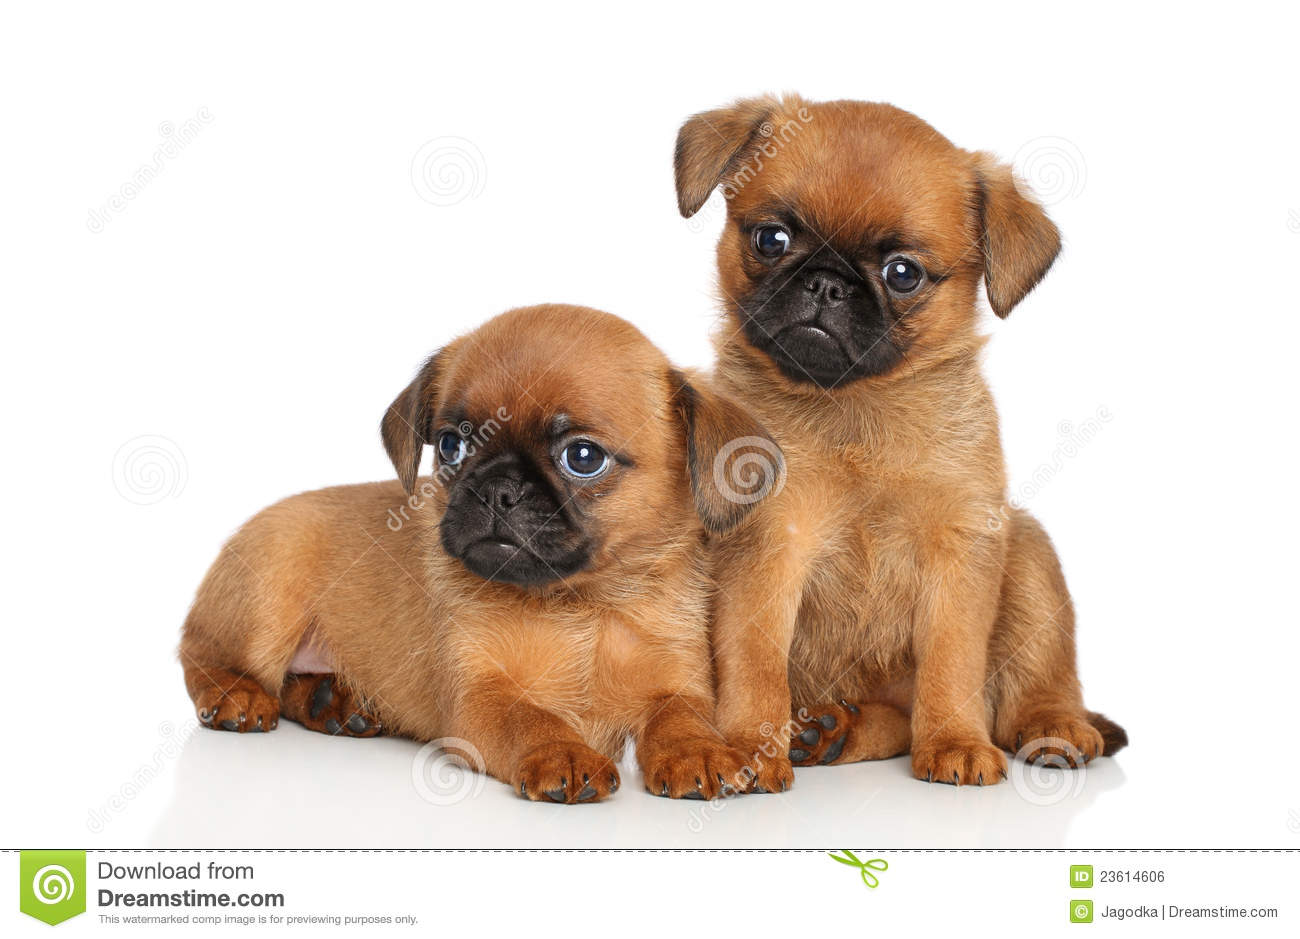 puppies stock photo. image of pedigreed, little, friends - 23614606